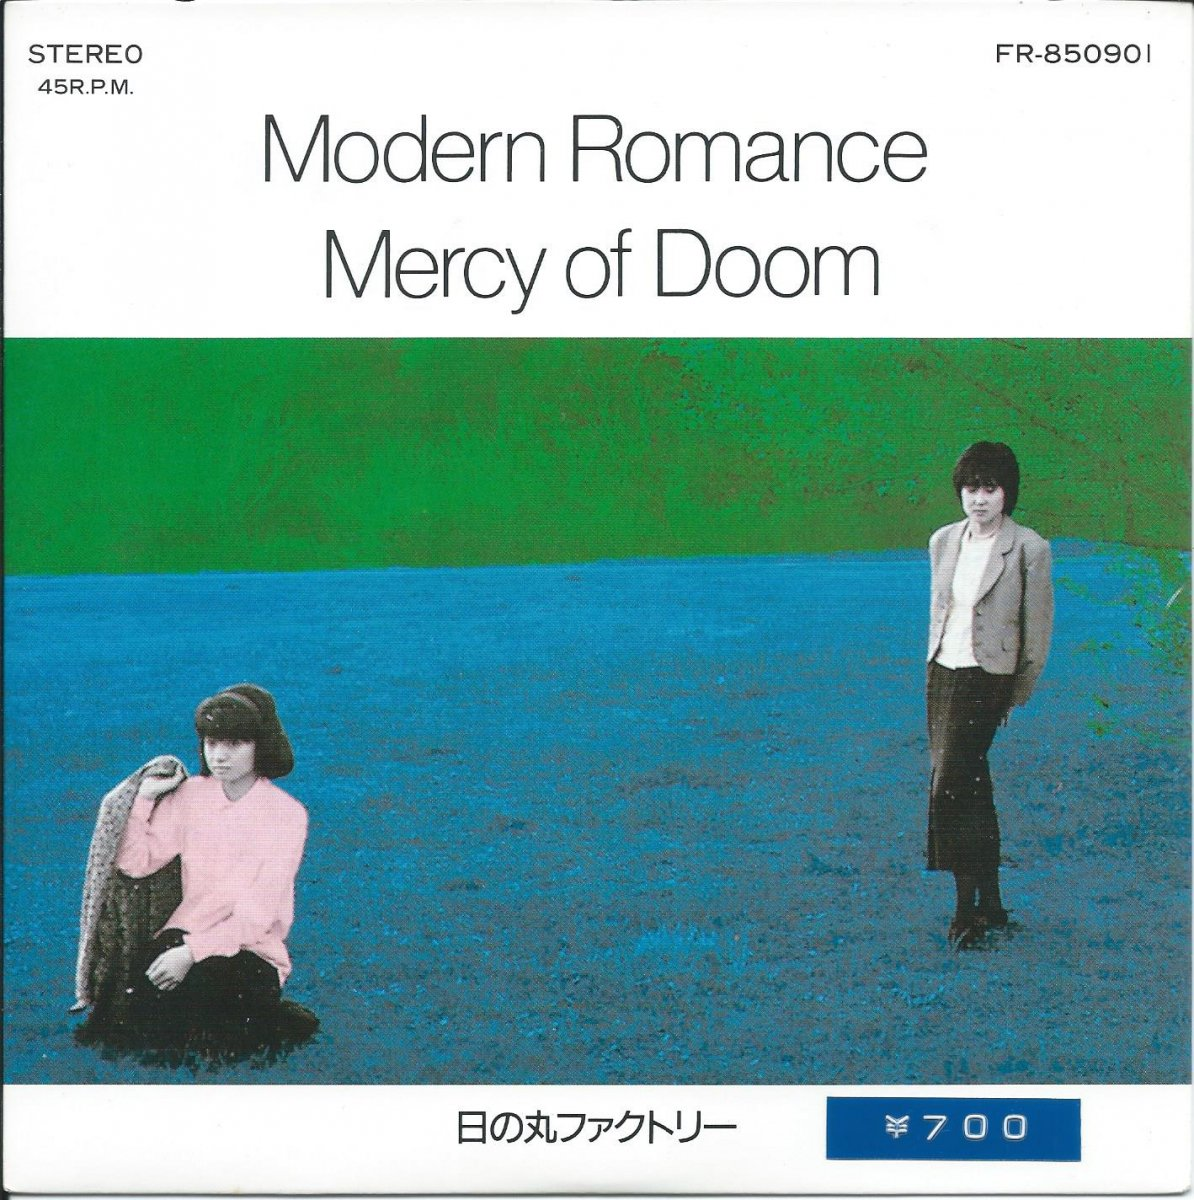 日の丸ファクトリー / MODERN ROMANCE / MERCY OF DOOM (DRUMS & MIXING PRODUCED BY 浦田賢一 EX サンハウス,SONHOUSE)(7